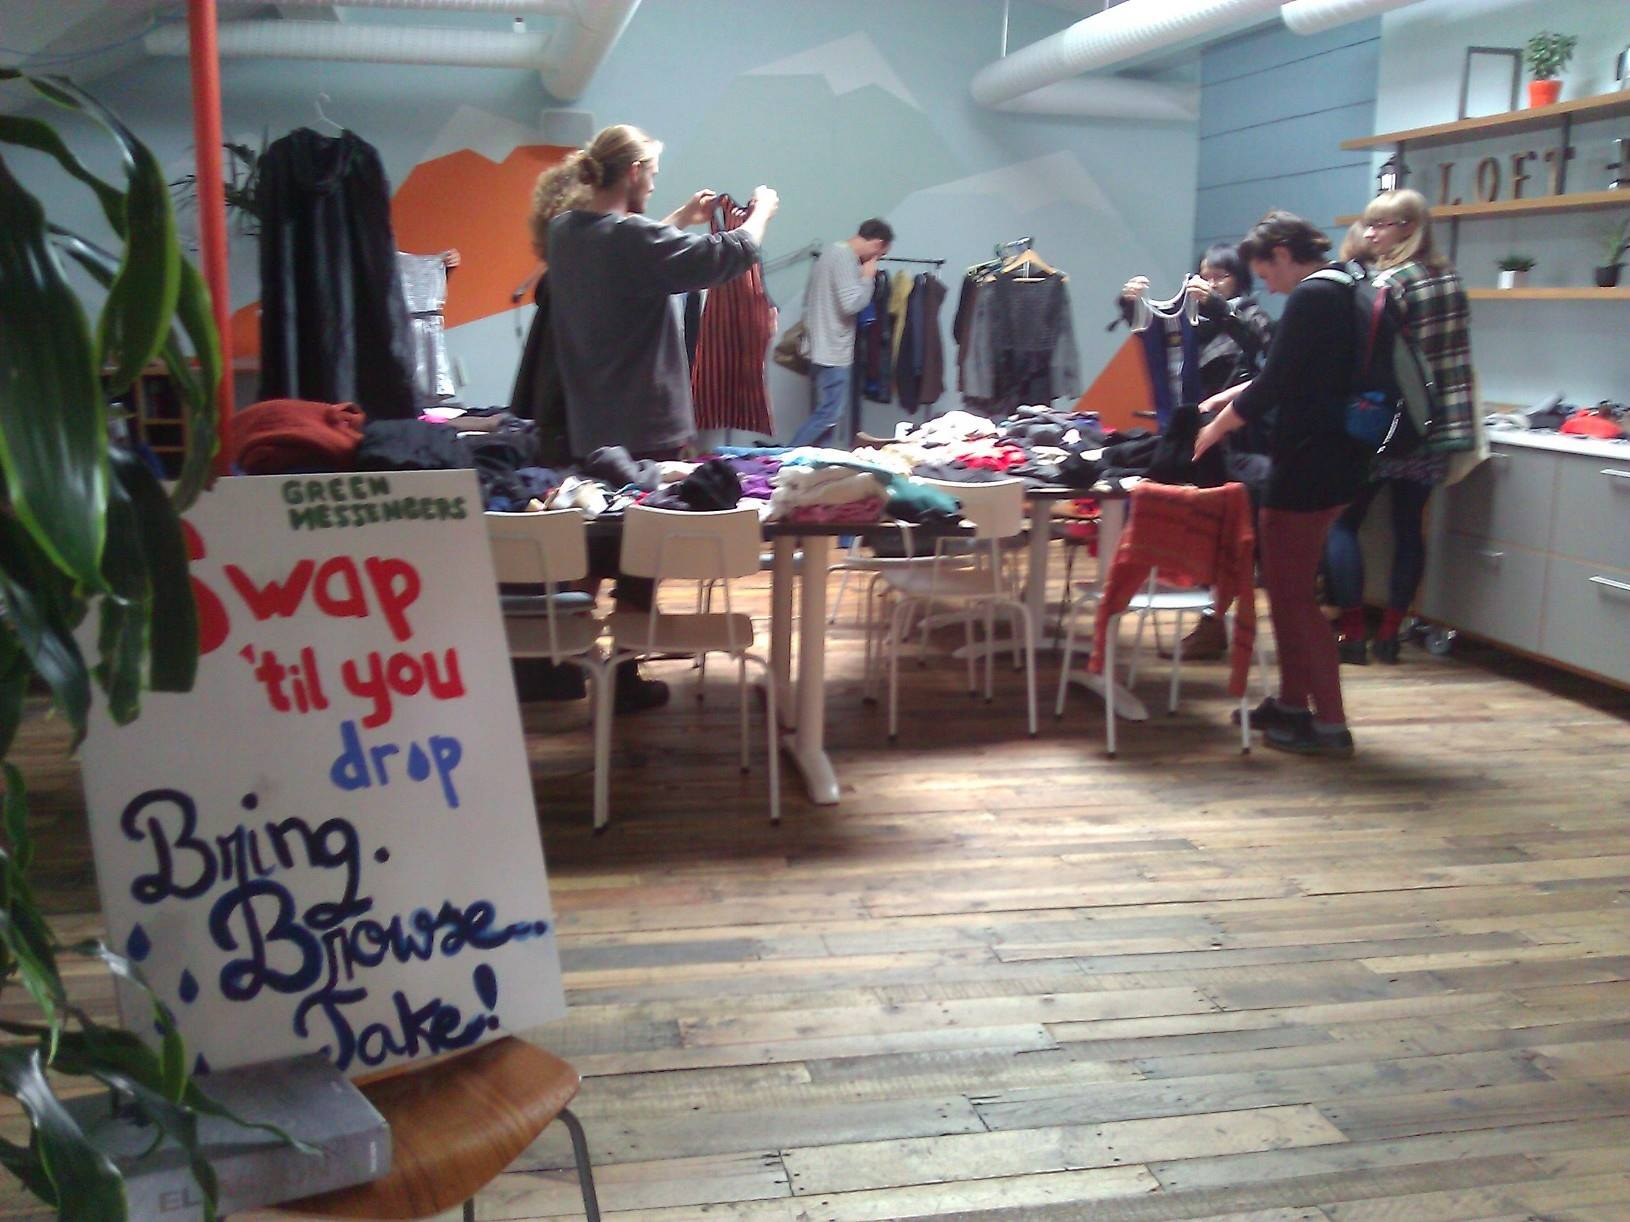 Loft Hostel - swap till you drop